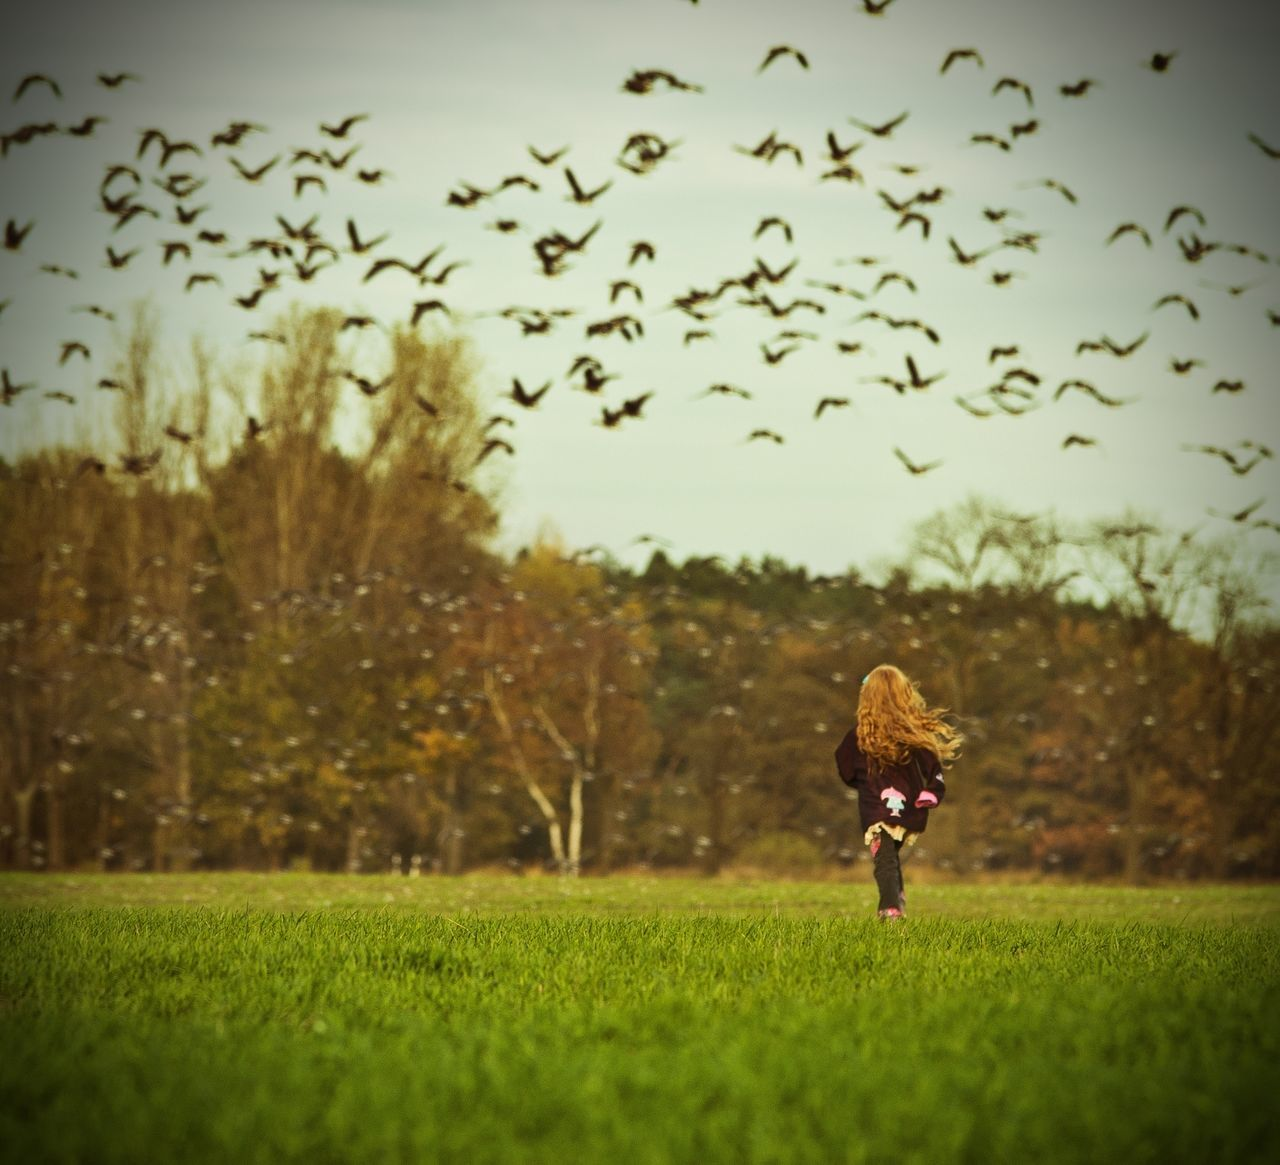 grass, childhood, field, nature, outdoors, one person, growth, sky, landscape, full length, flying, real people, tree, beauty in nature, day, bird, people